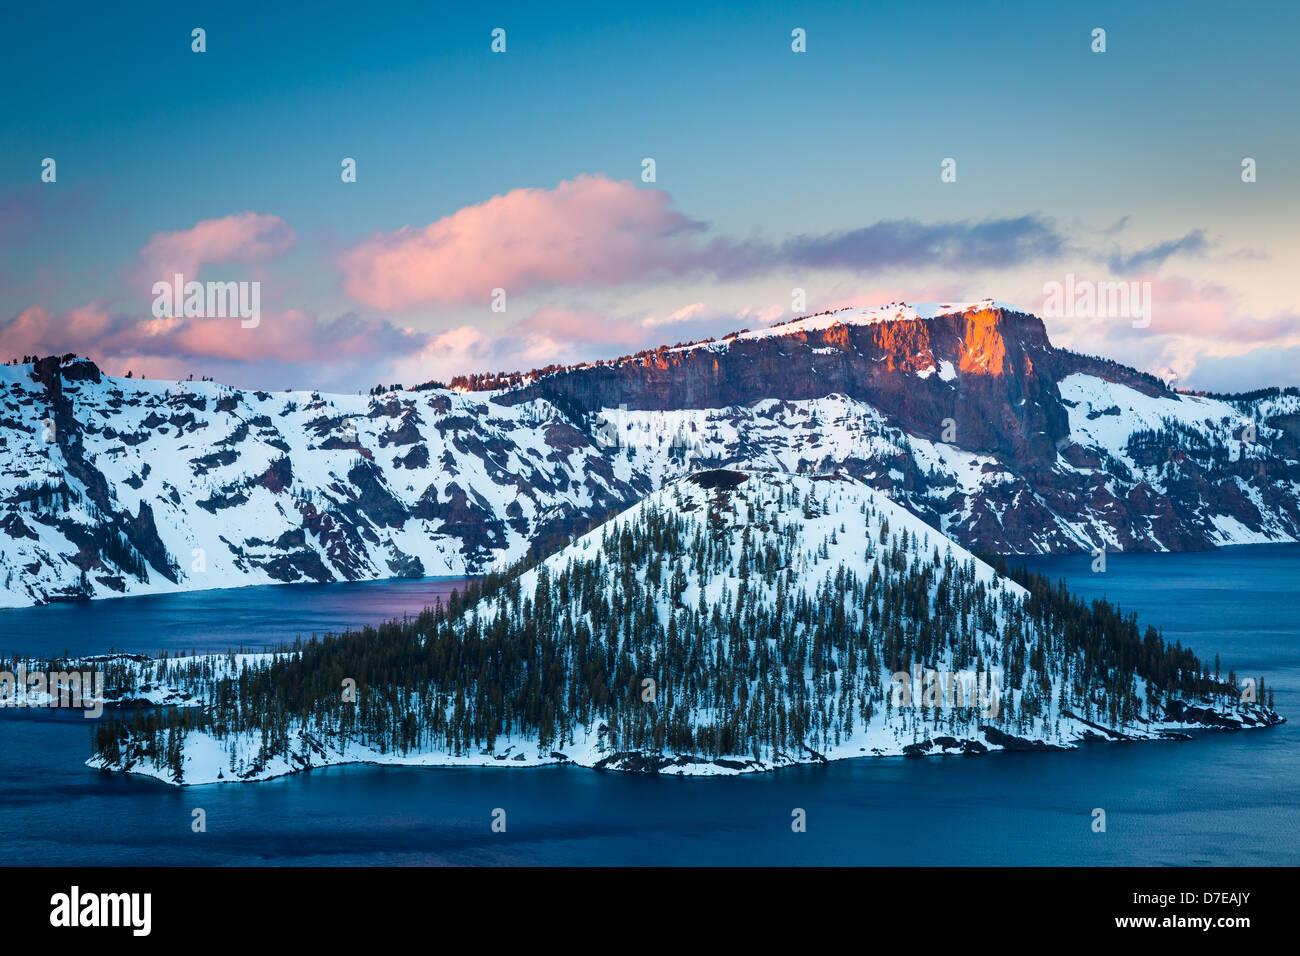 Crater Lake National Park, located in southern Oregon, during winter - Stock Image